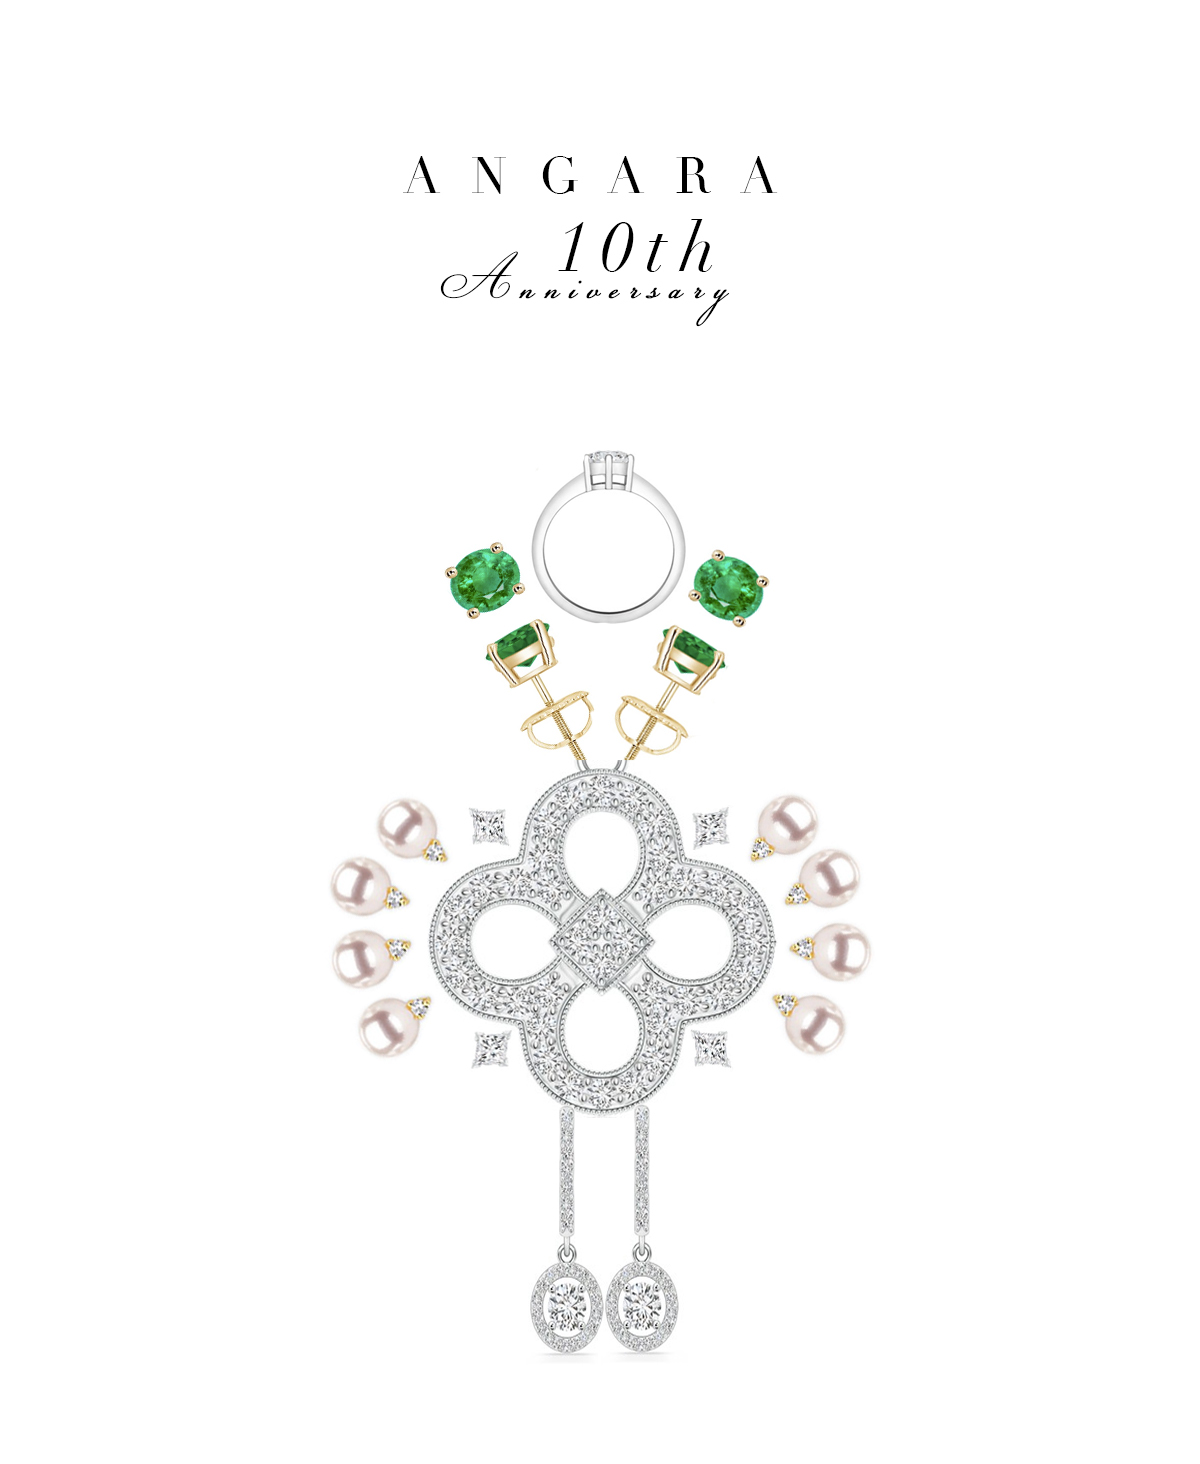 Angara 10th Anniversary Sale